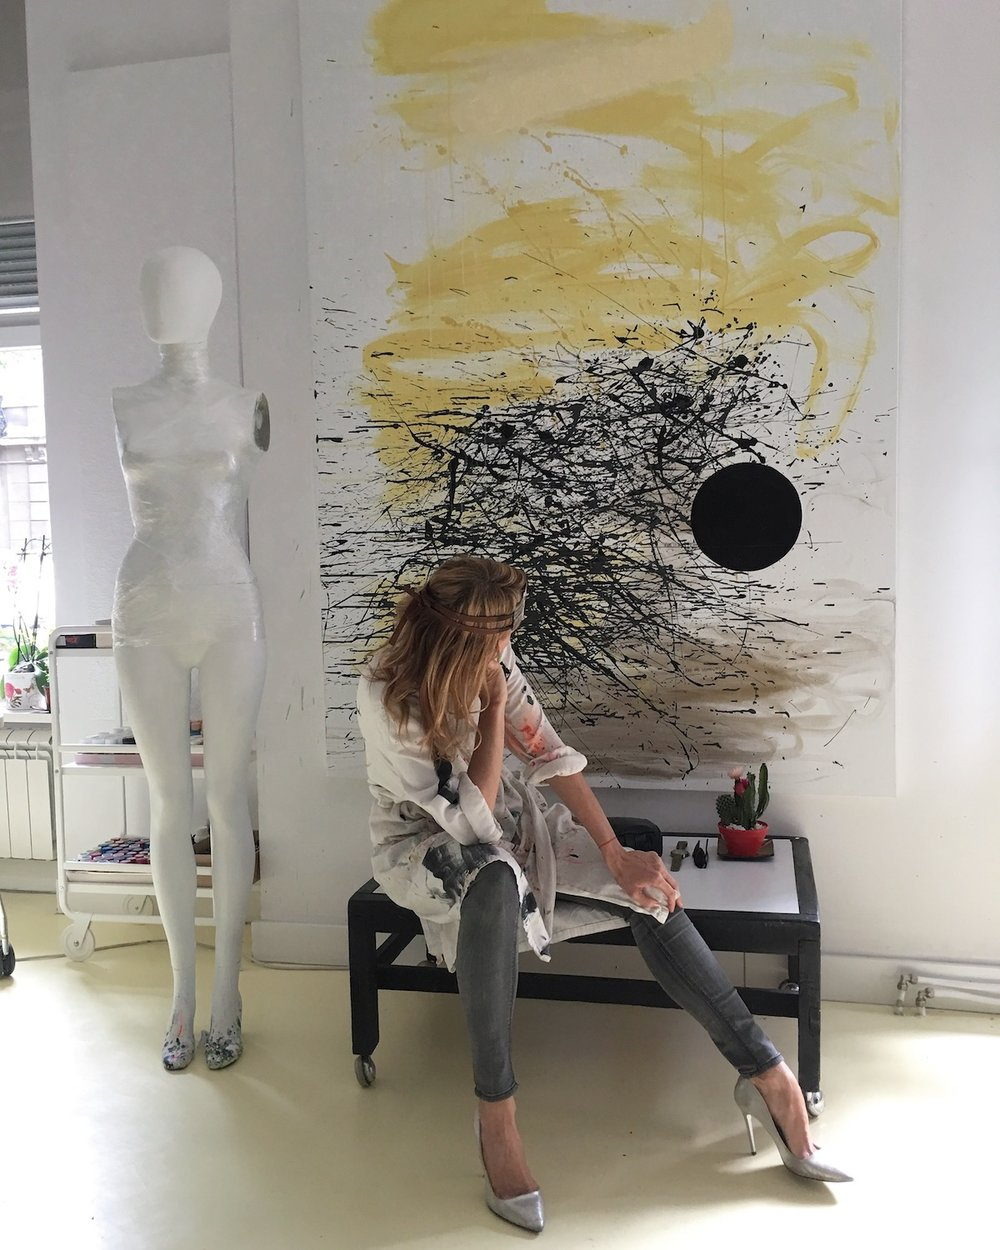 blog 1 Artist in her studio 1.jpg